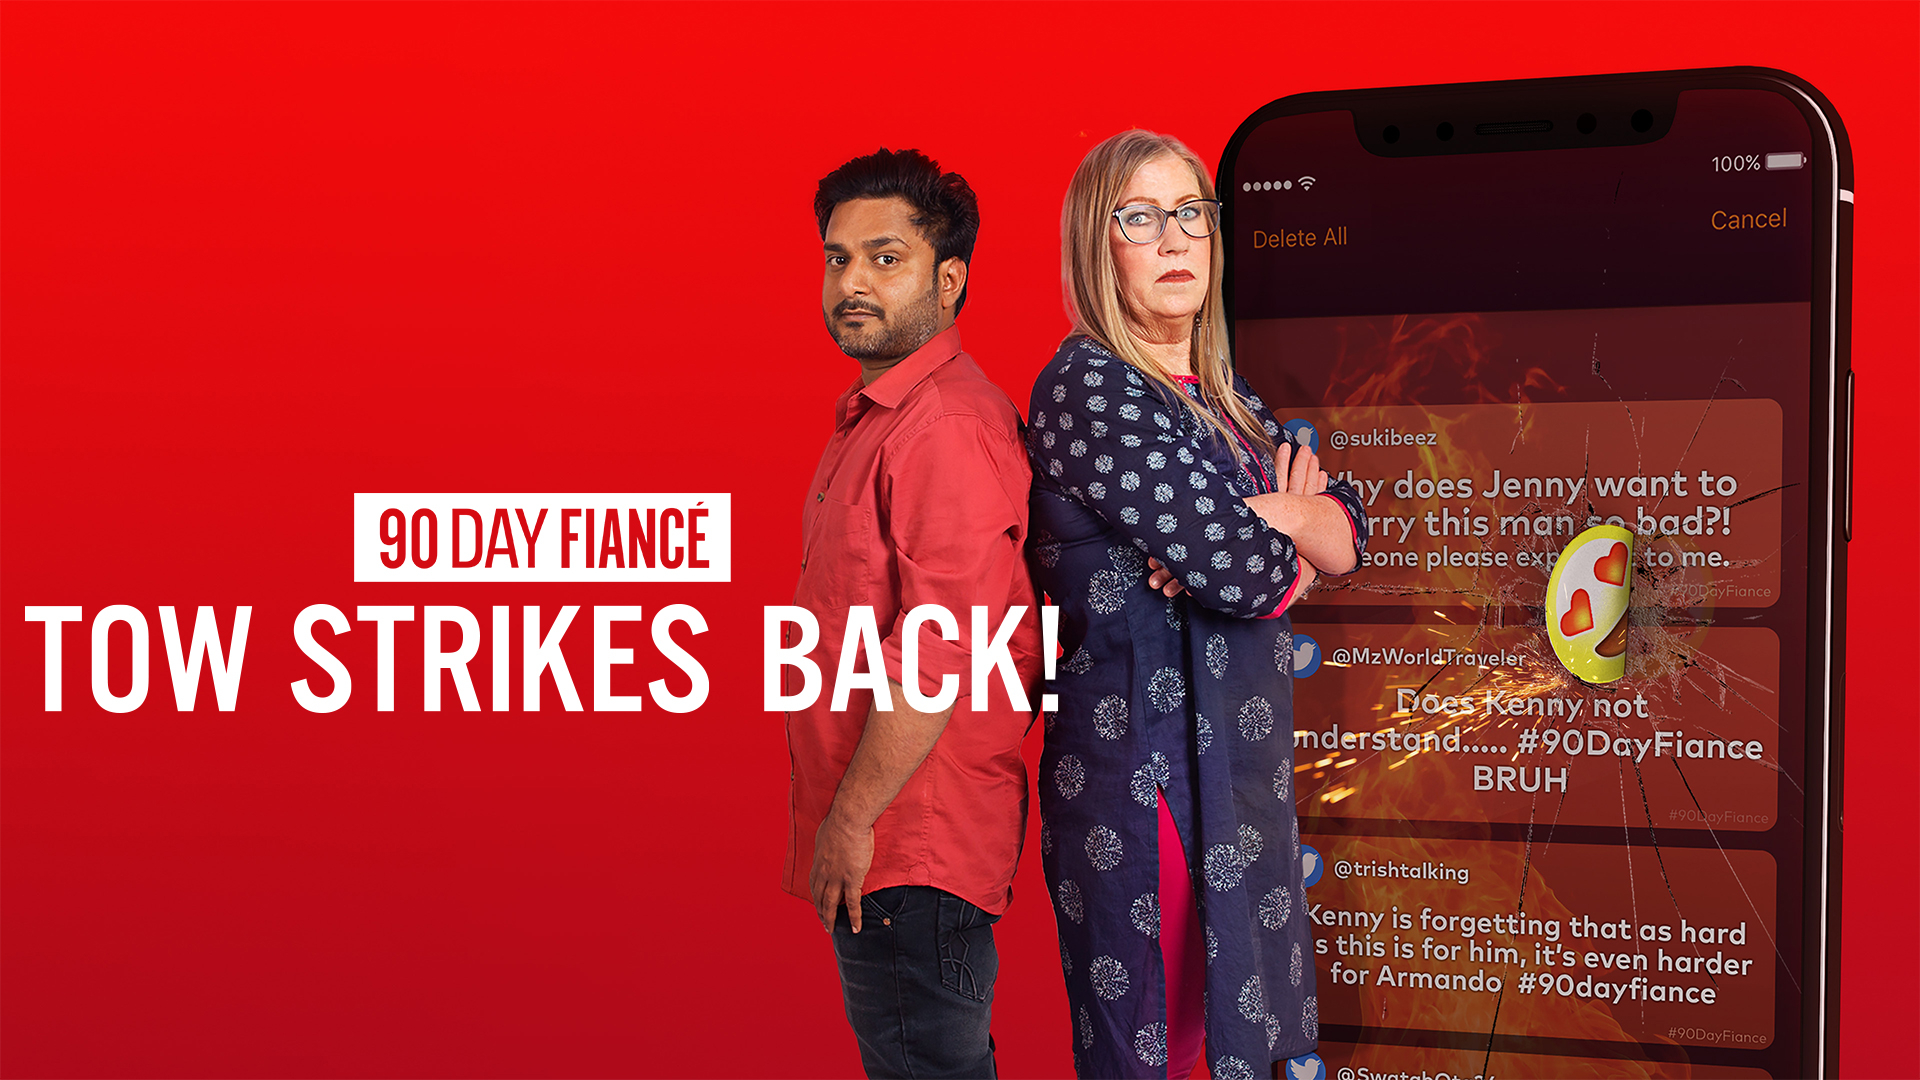 90 Day Fiance: The Other Way Strikes Back! - Season 1